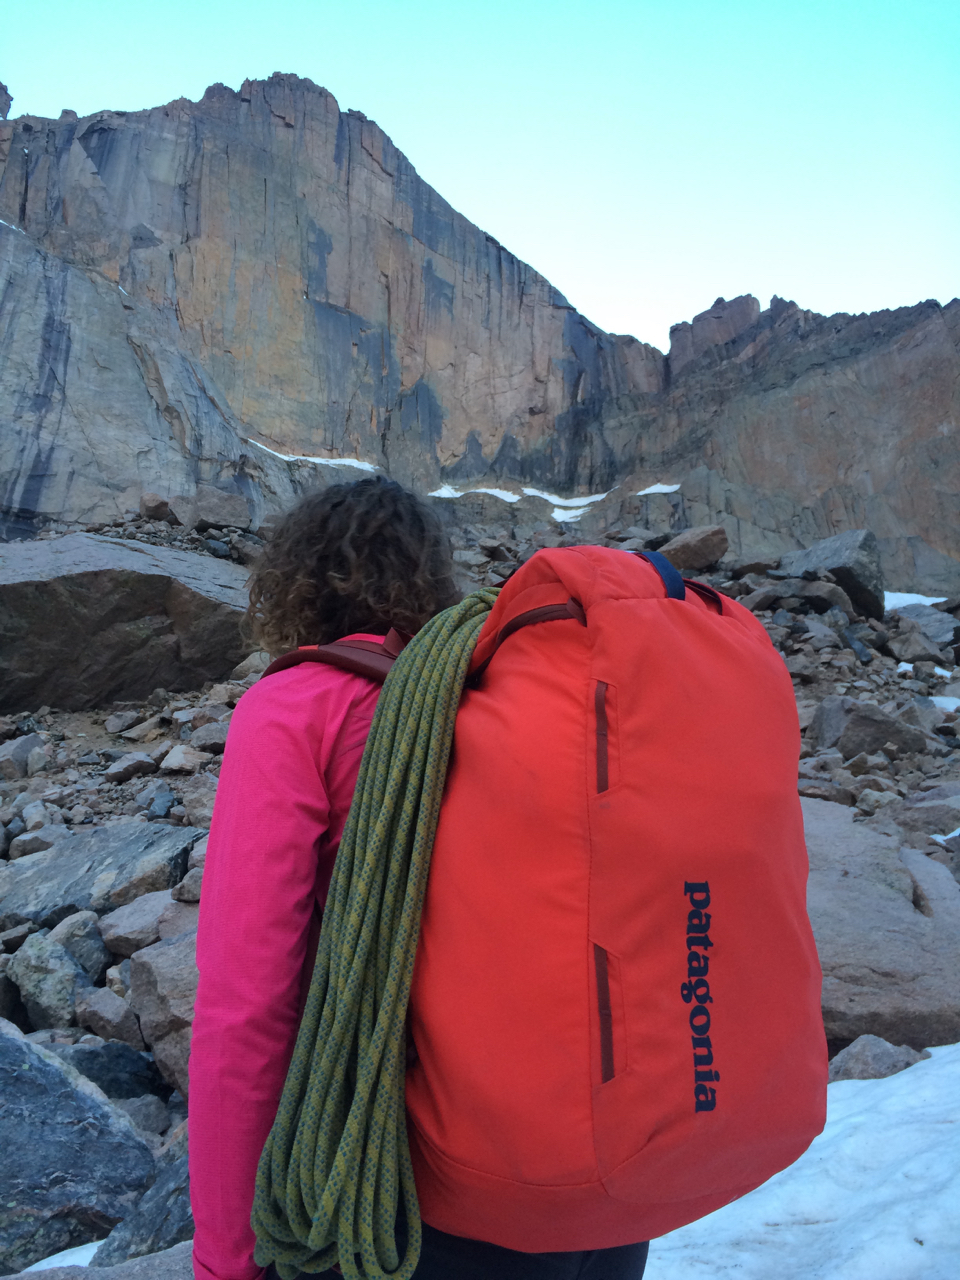 AMGA Rock Guide Lindsay Fixmer Tests the Patagonia Cragsmith Pack ... ecf7d00ce6fb9